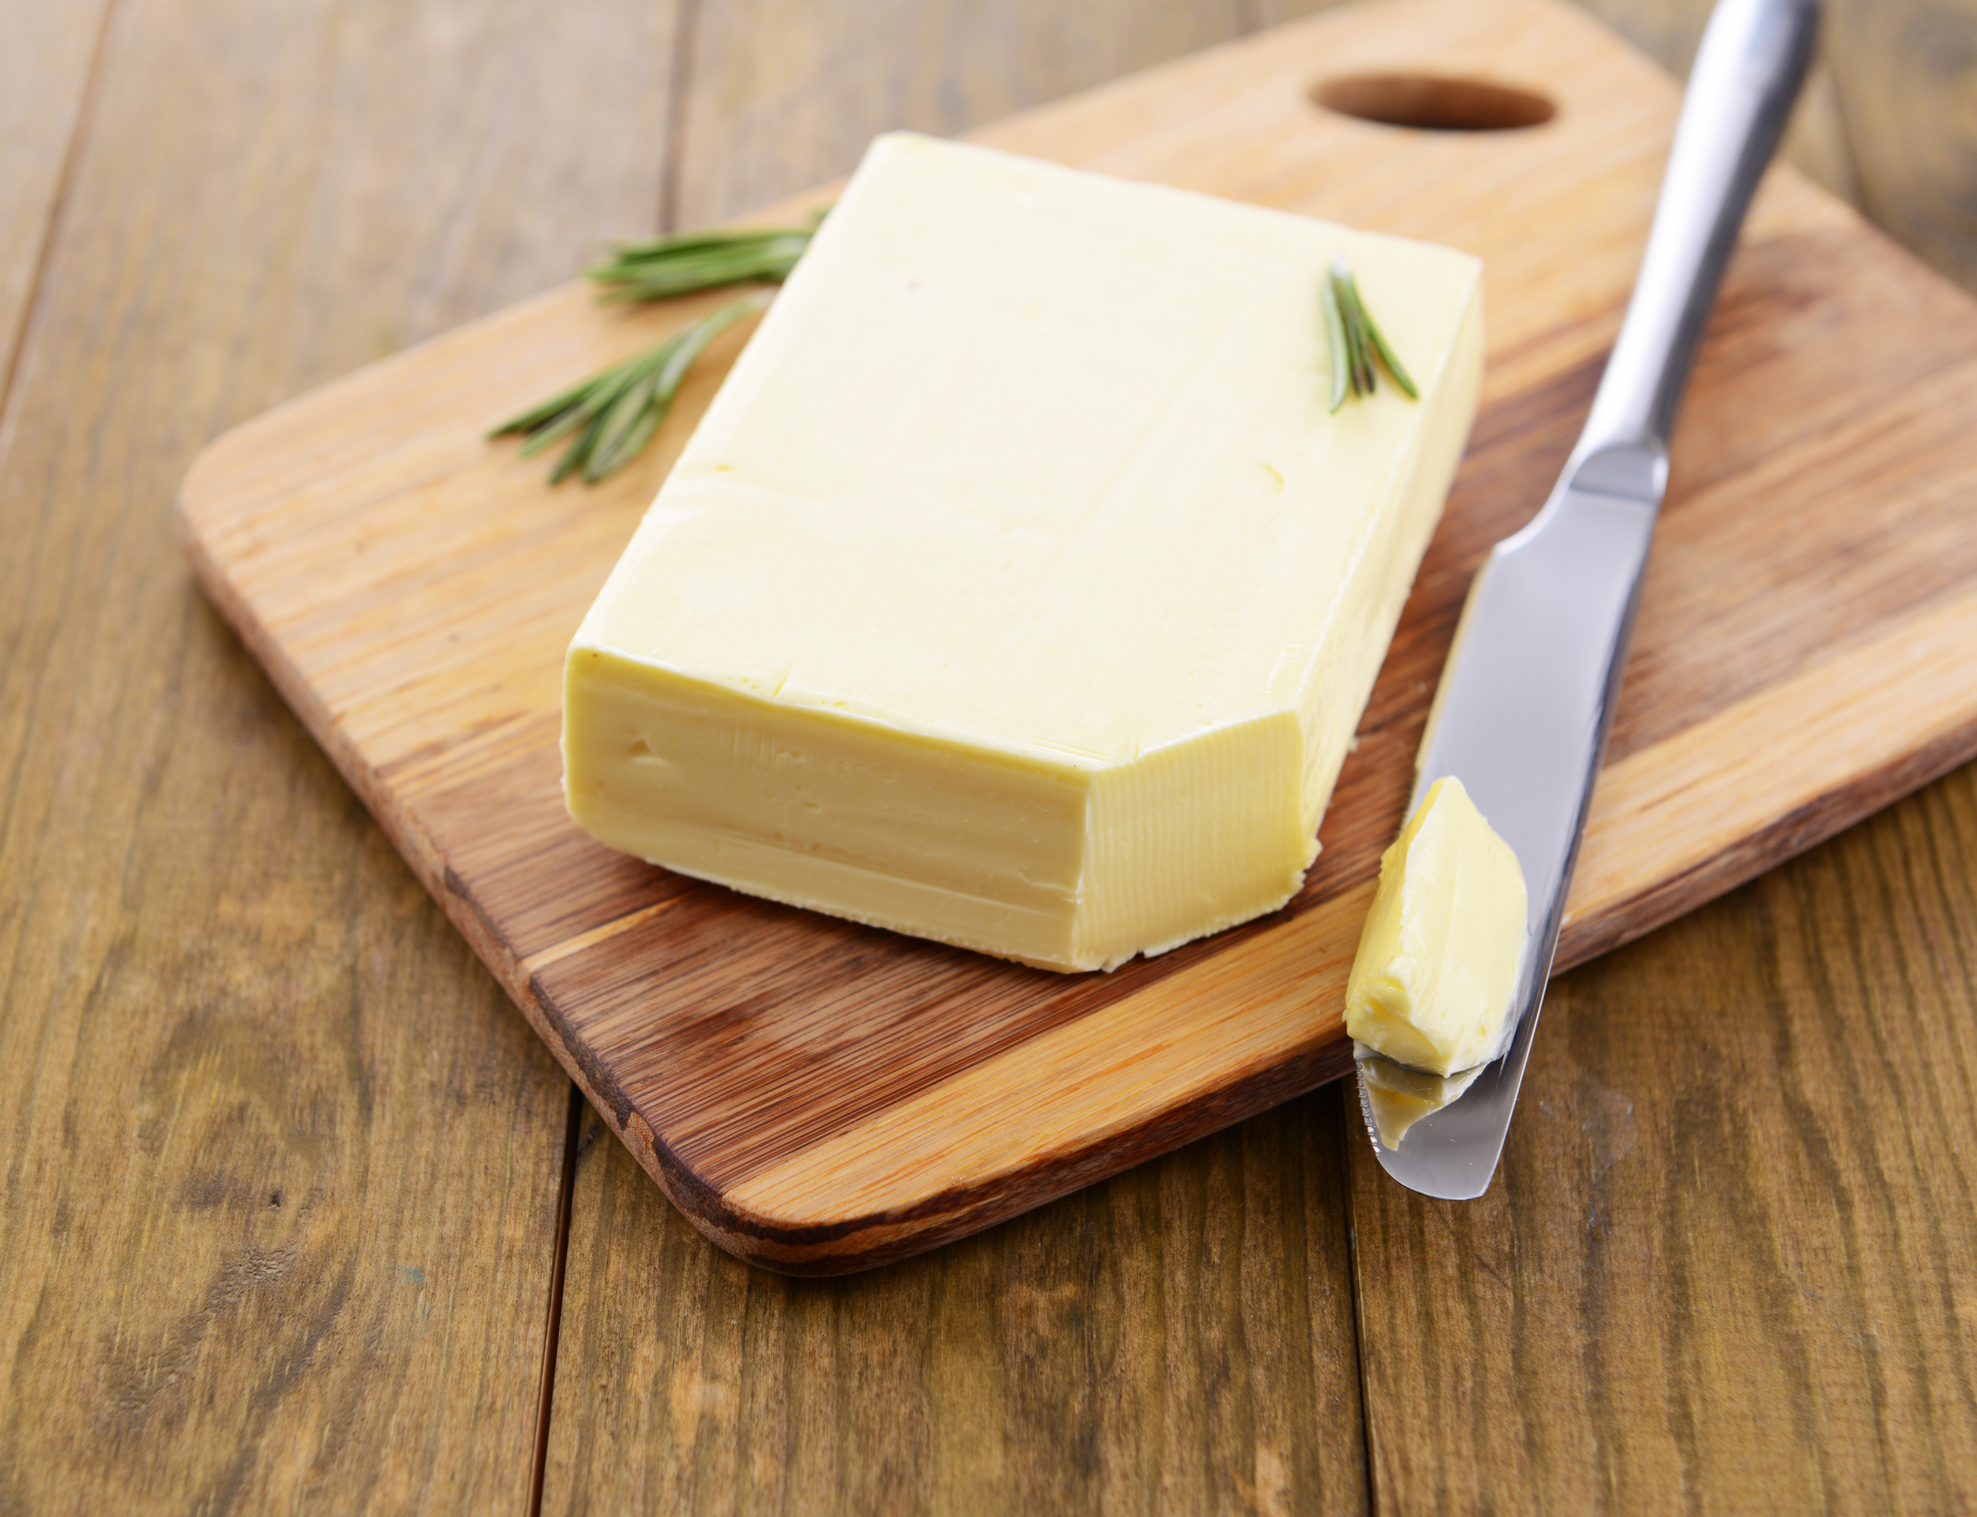 Is Butter Healthy?